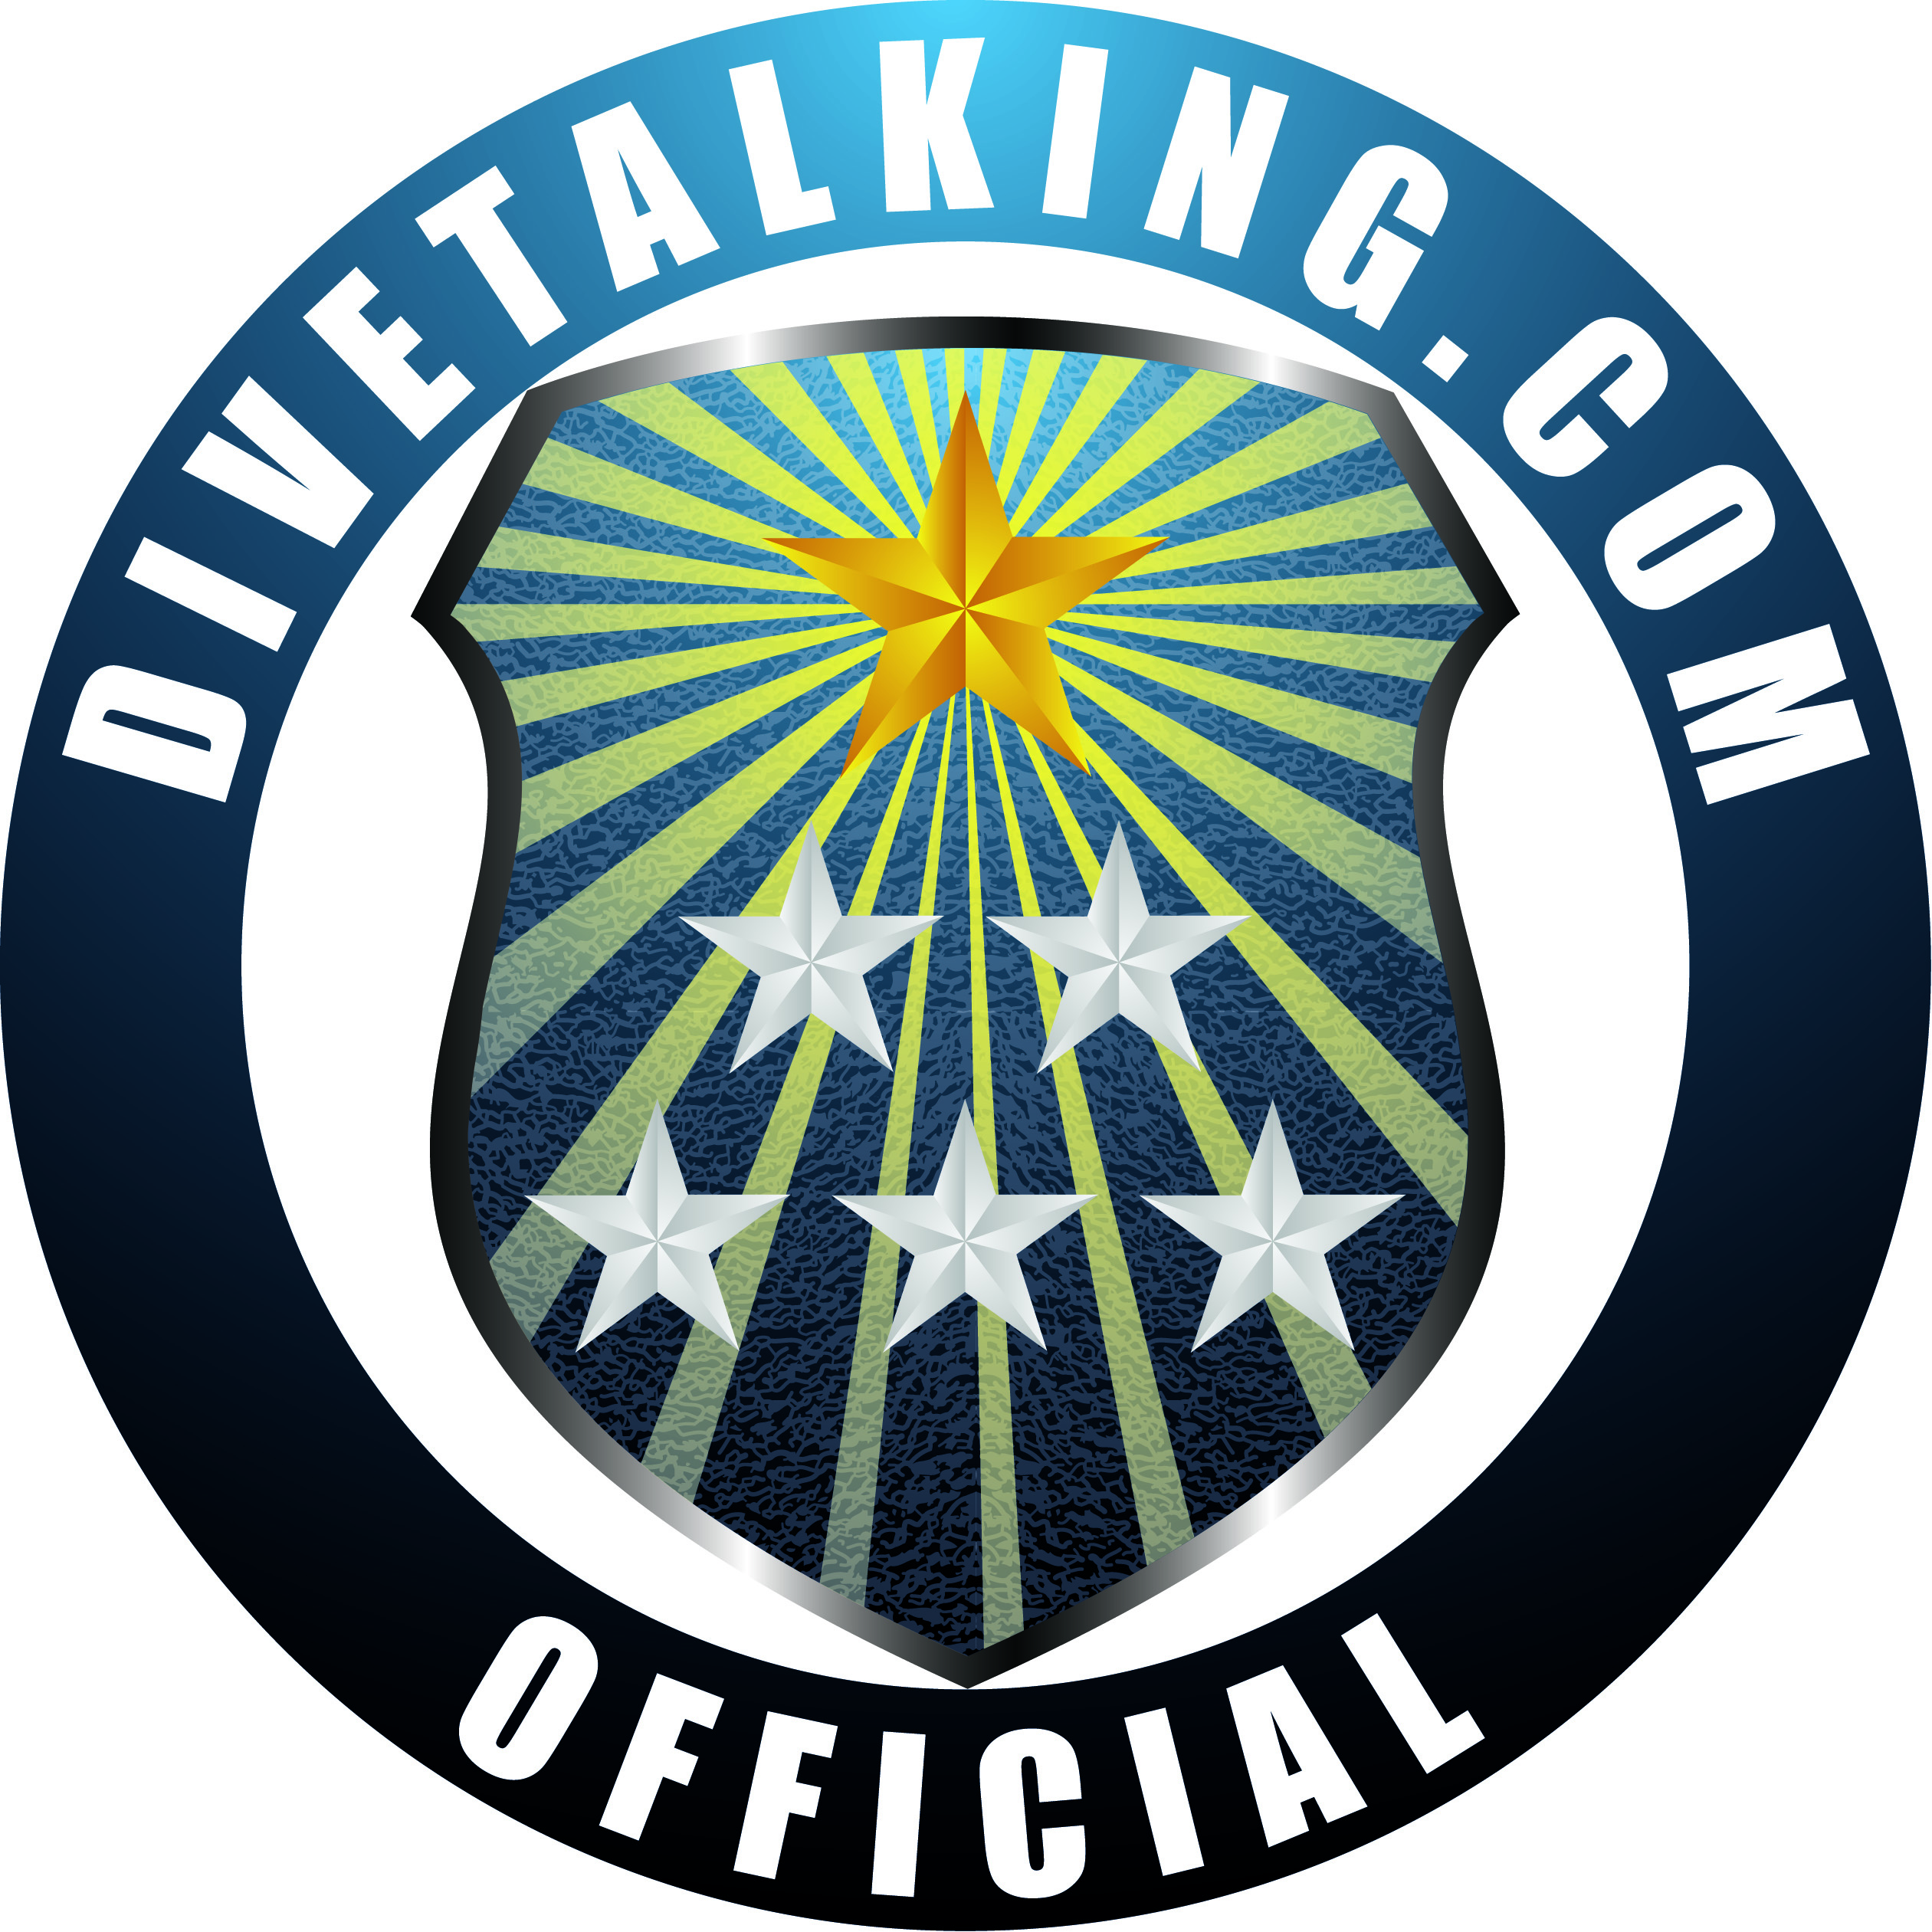 Show your support by displaying Divetalkings official logo